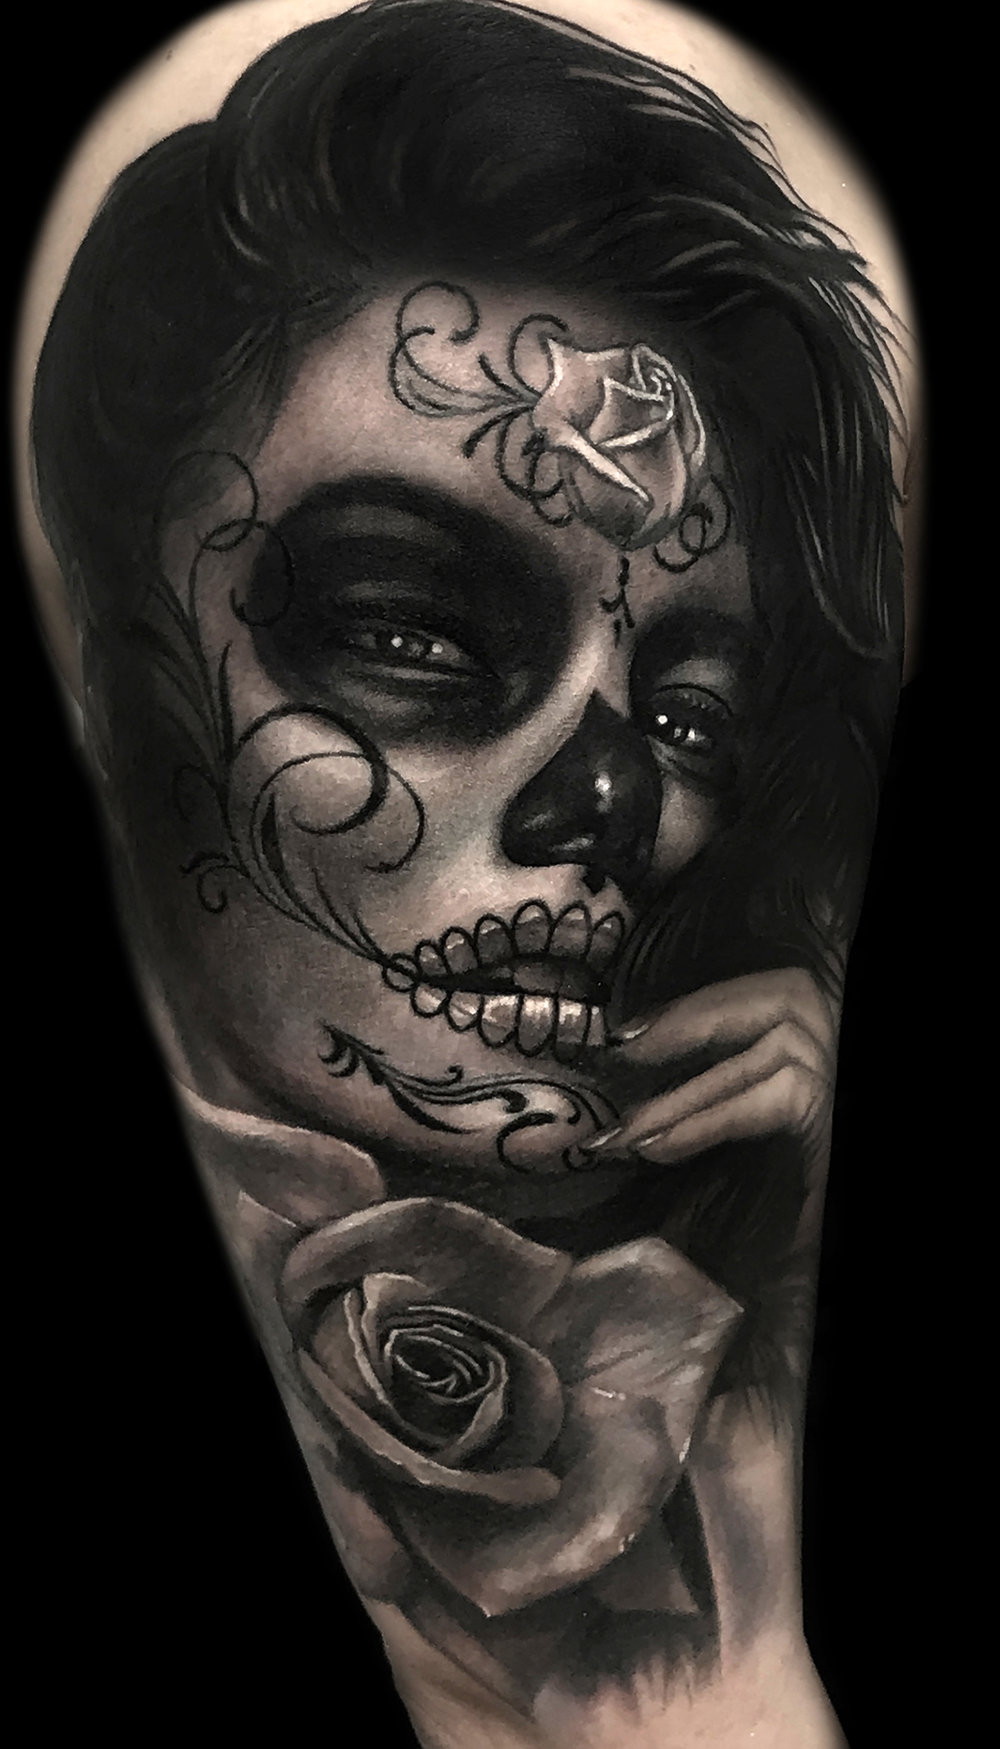 Liz Cook Tattoo Liz Girl DOD Rose Black & Gray Upper Arm.jpg